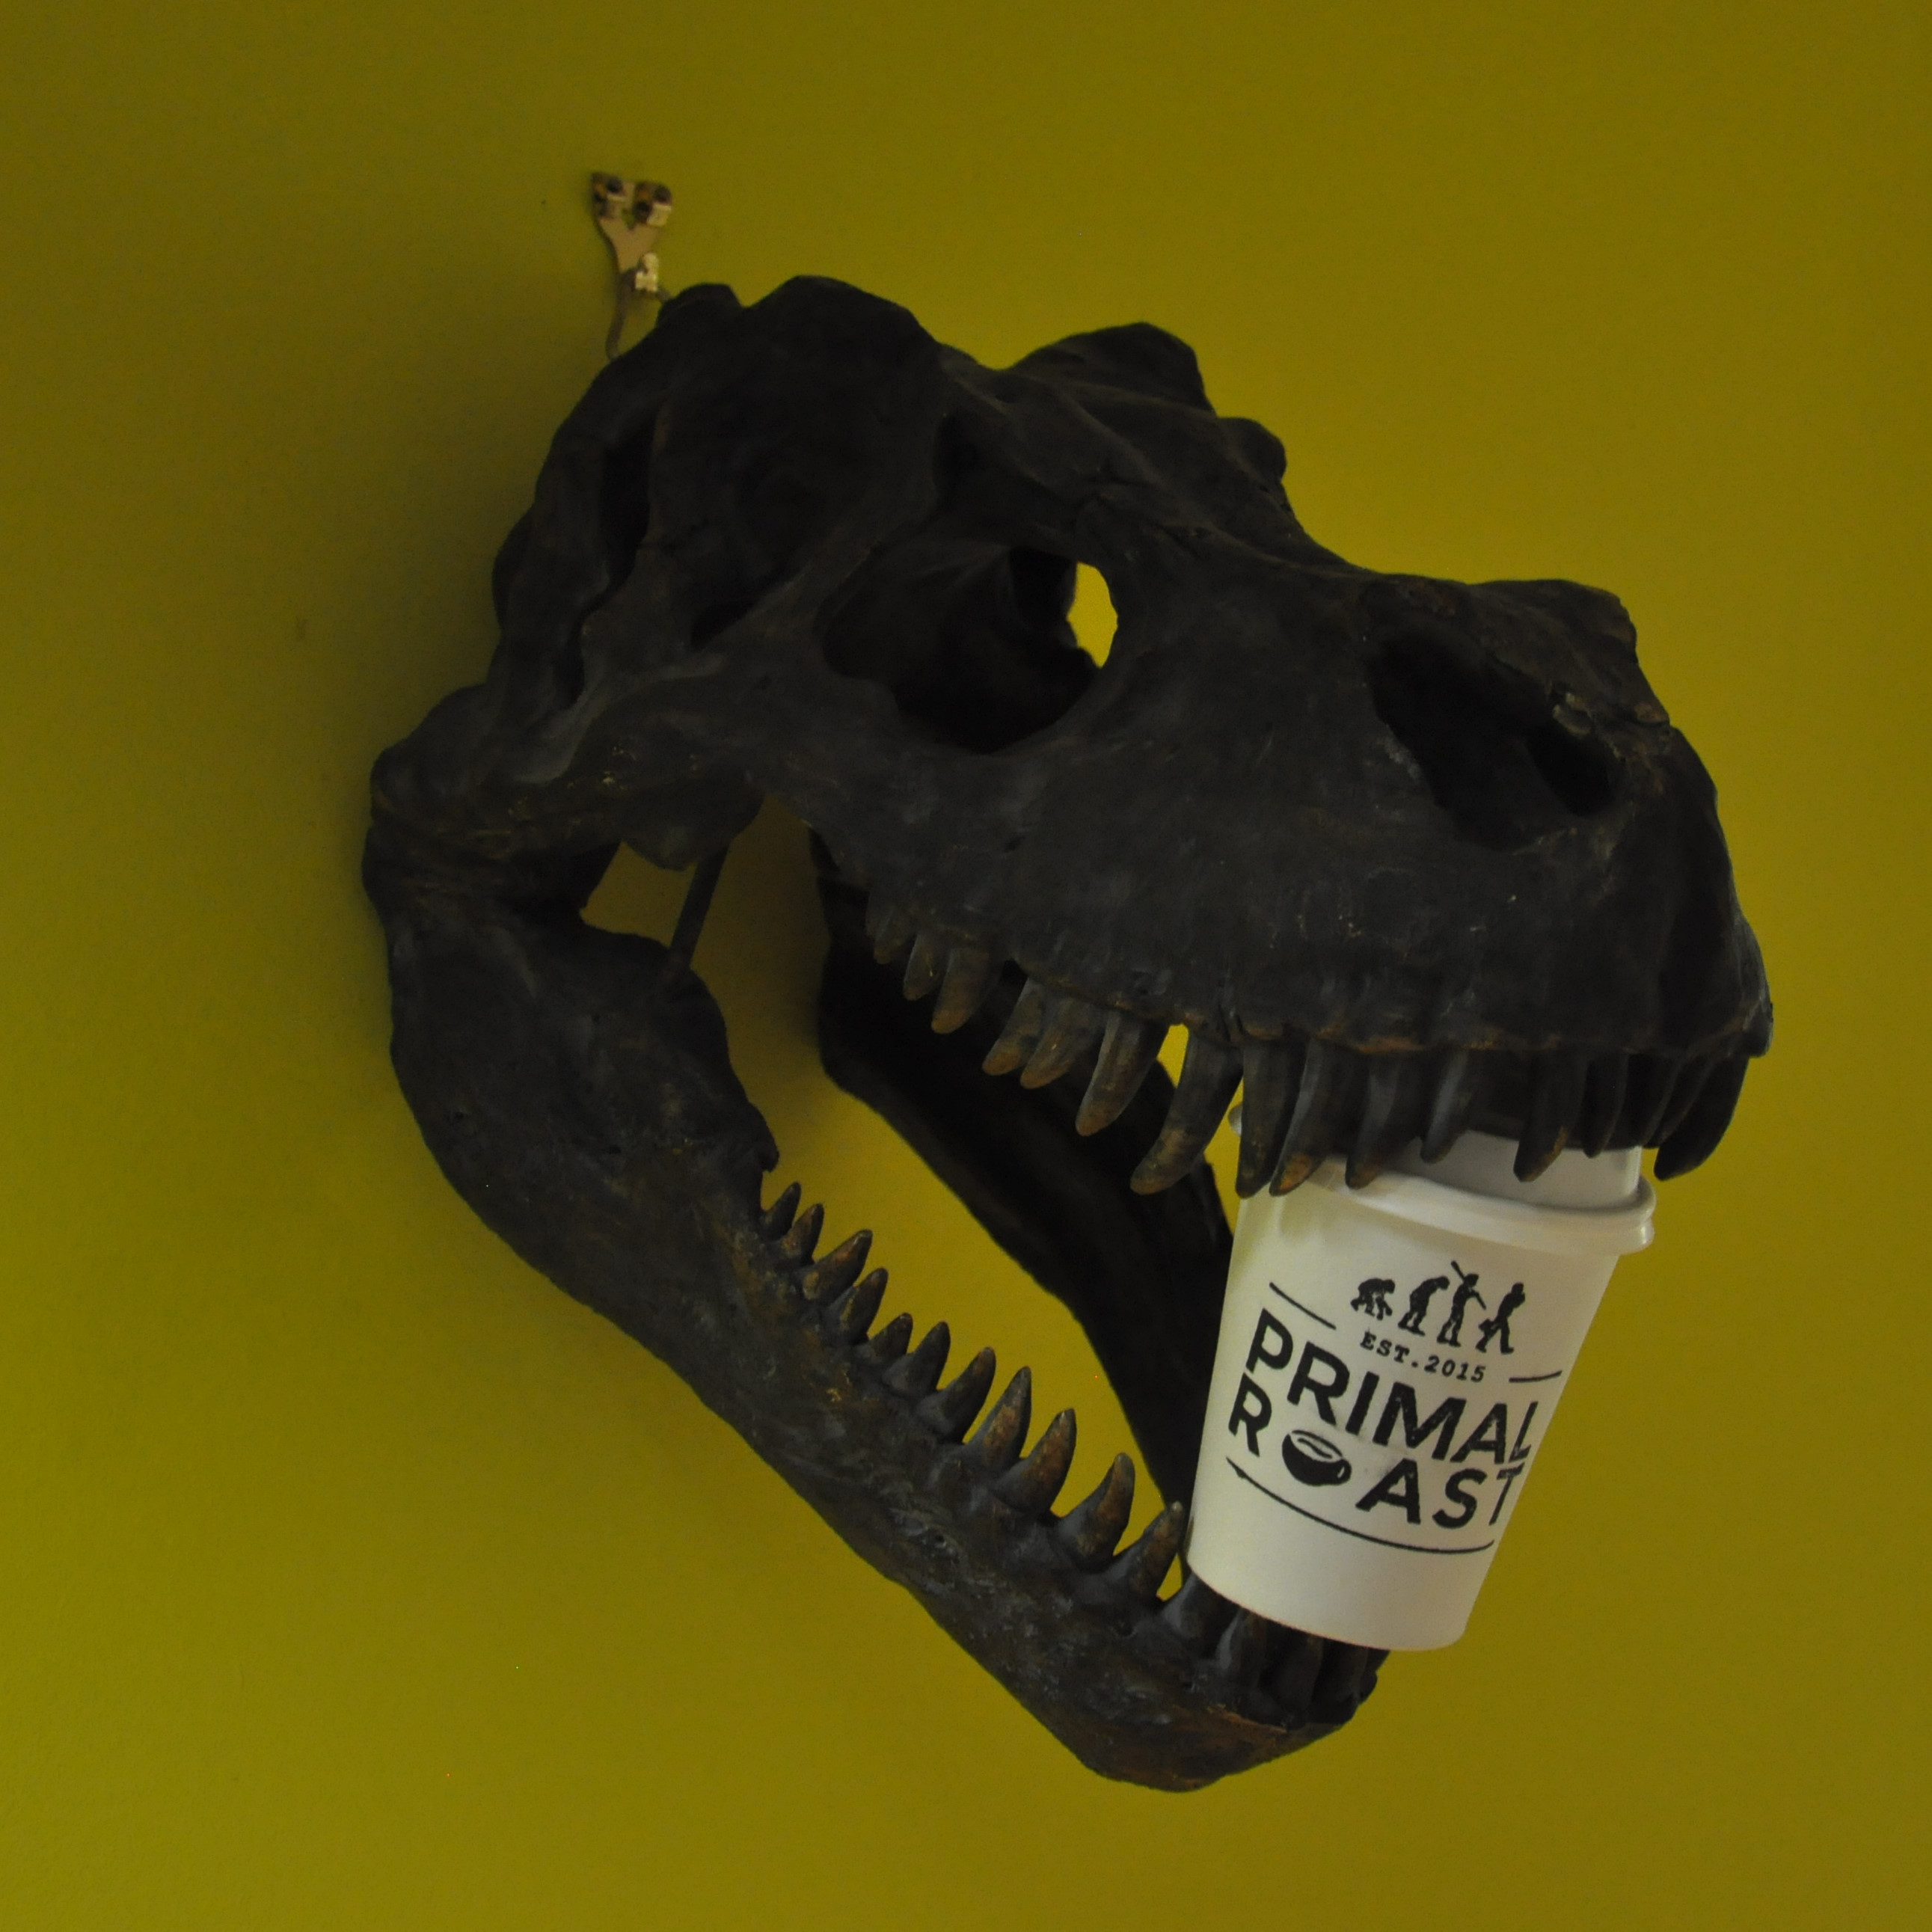 What looks to be a dinosaur's skull from the wall of Primal Roast in Glasgow, holding a Primal Roast takeaway cup between its open jaws.